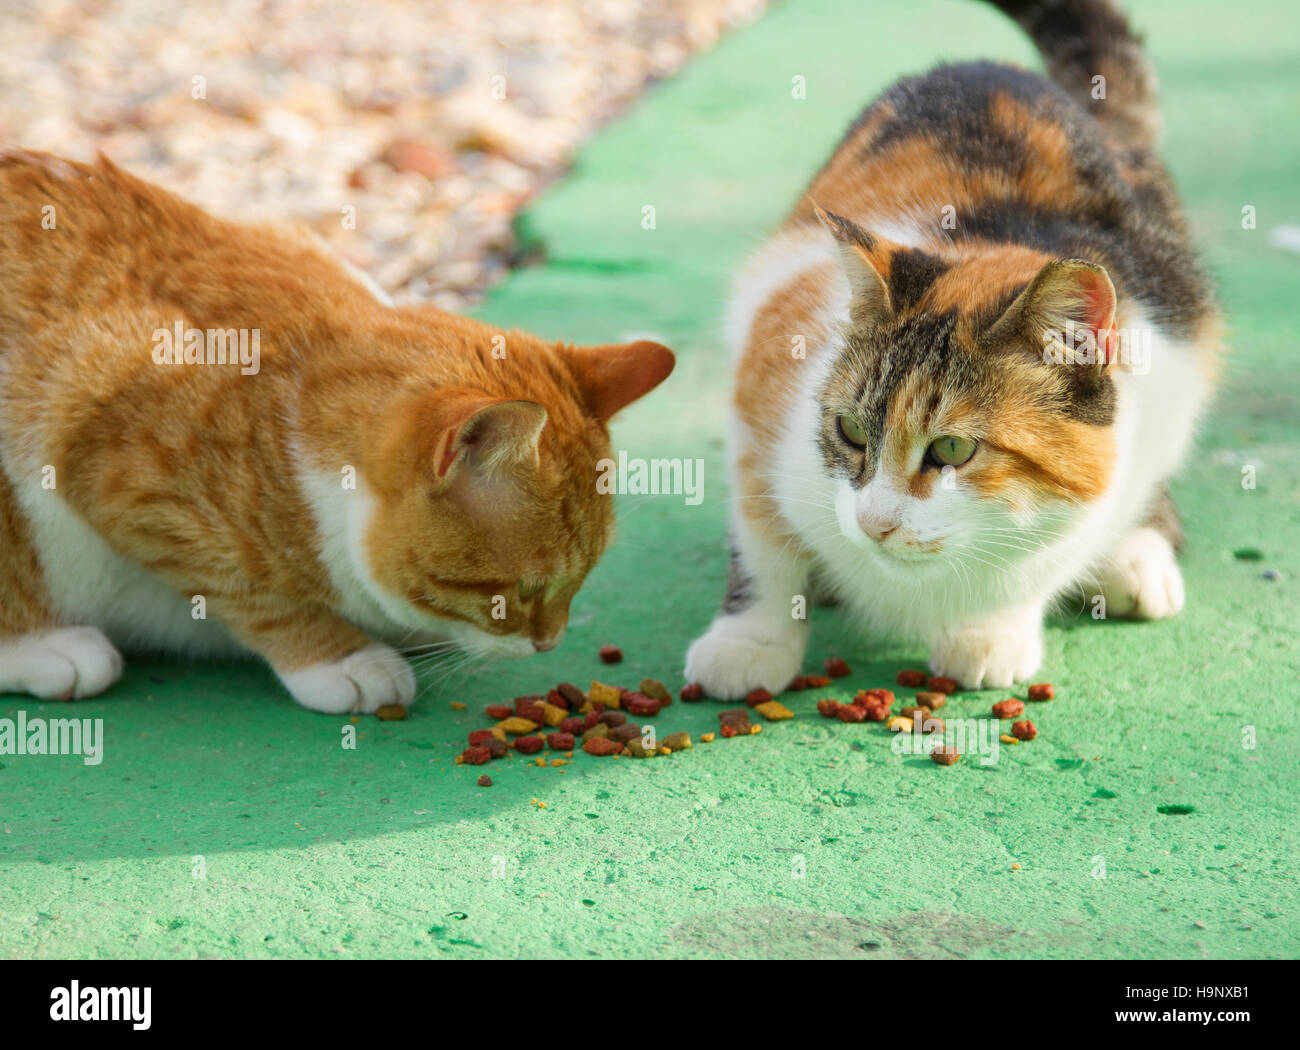 Two different color cats eating cat food on the green for Cuisine on the green